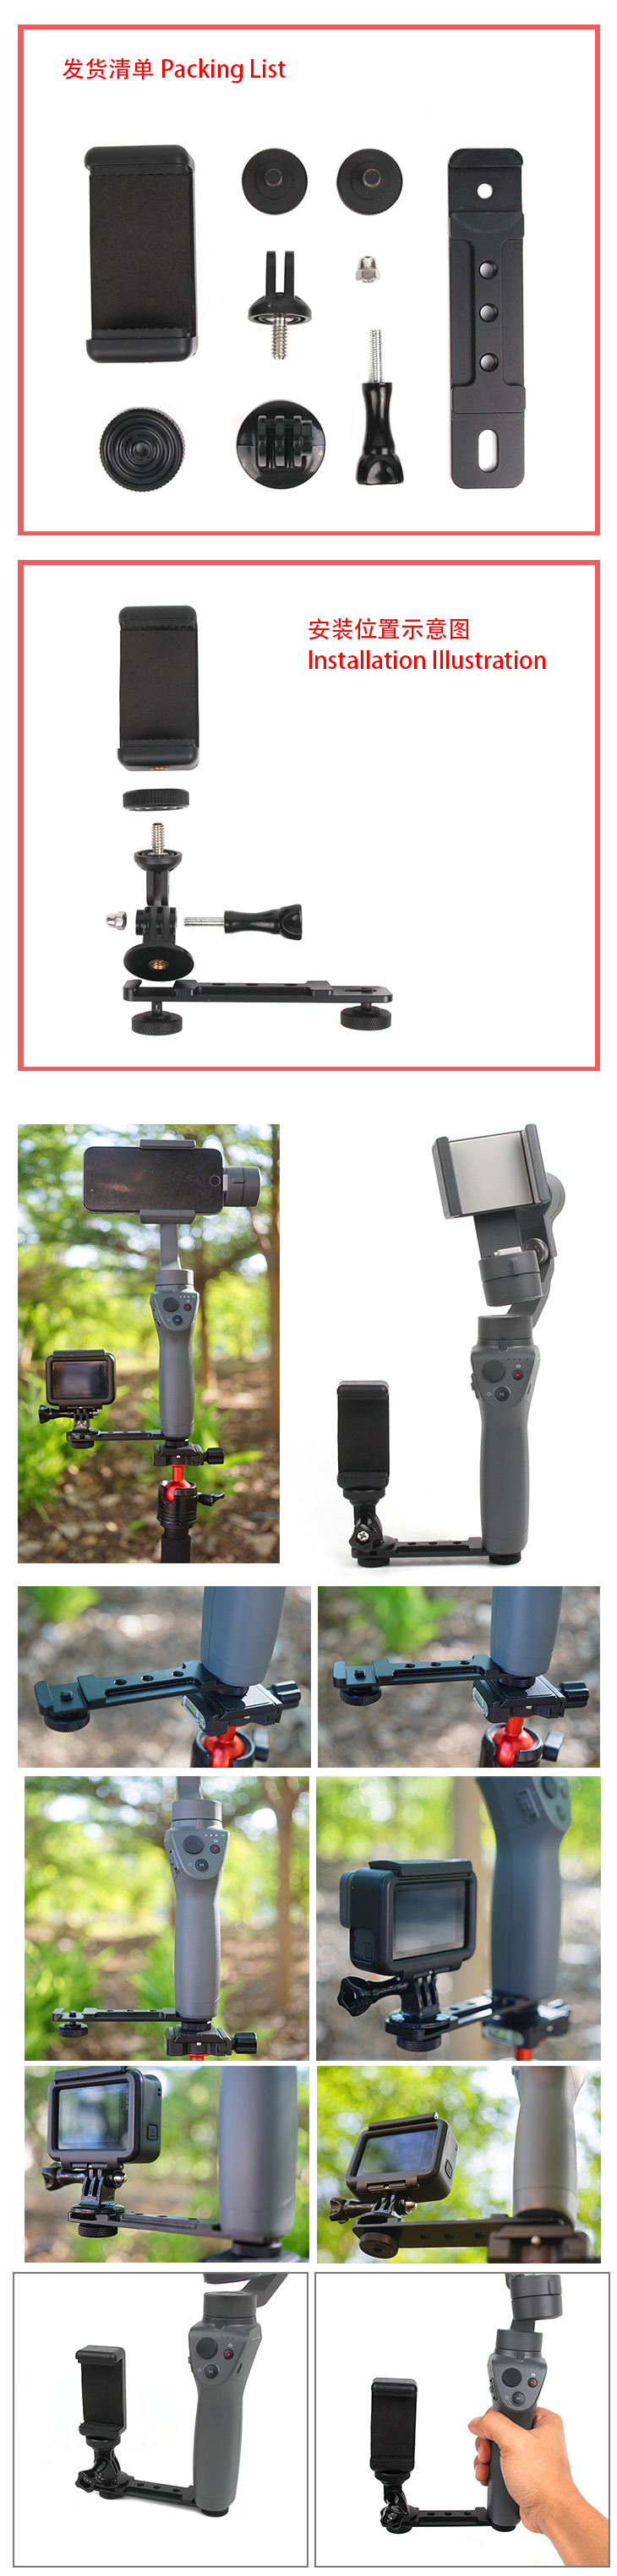 Mobile Phone Holder Camera Handheld Stabilizer Expands Bracket Gimbal Mount Adapter Kit for DJI OSMO Mobile 2 Accessories 1